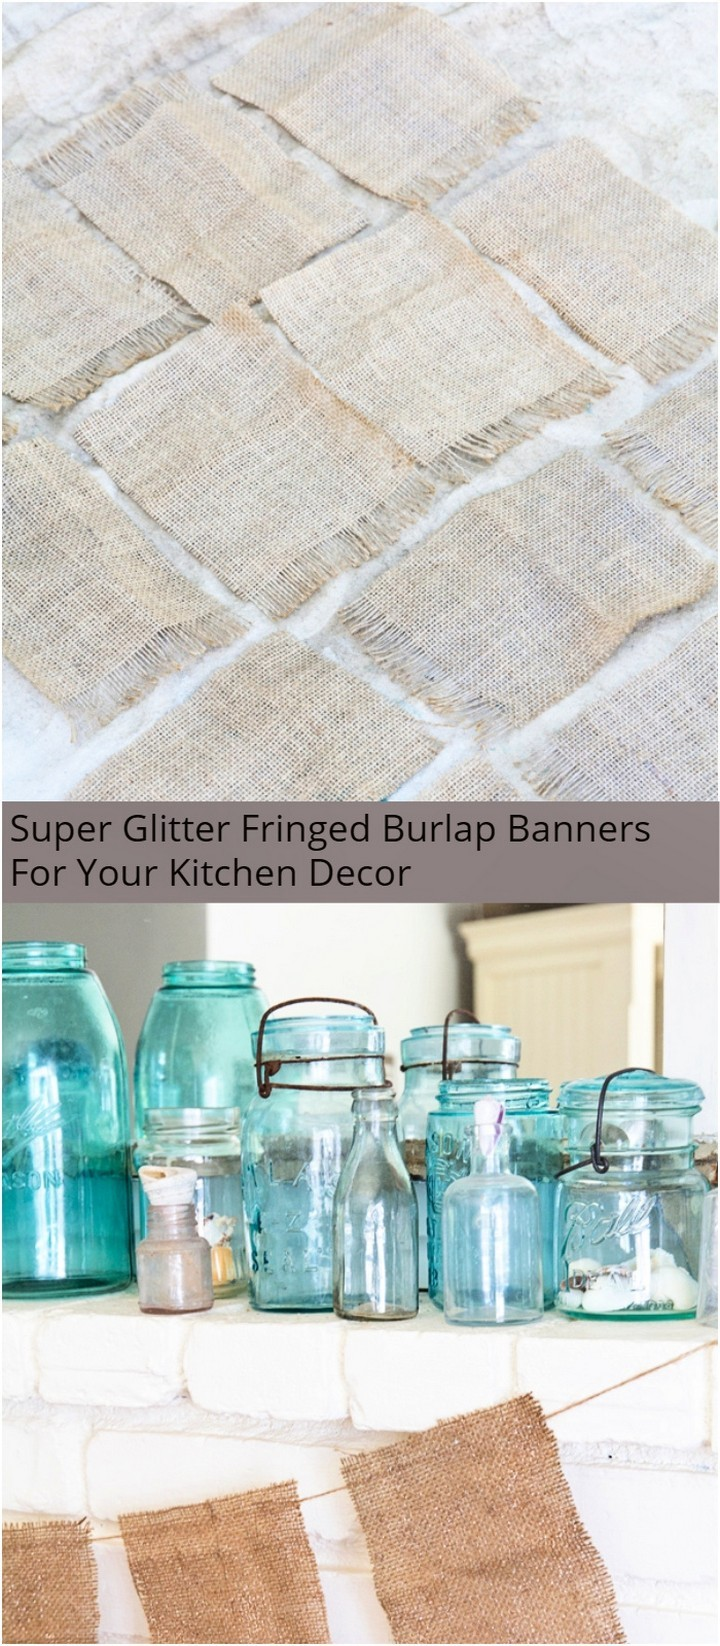 Super Glitter Fringed Burlap Banners For Your Kitchen Decor